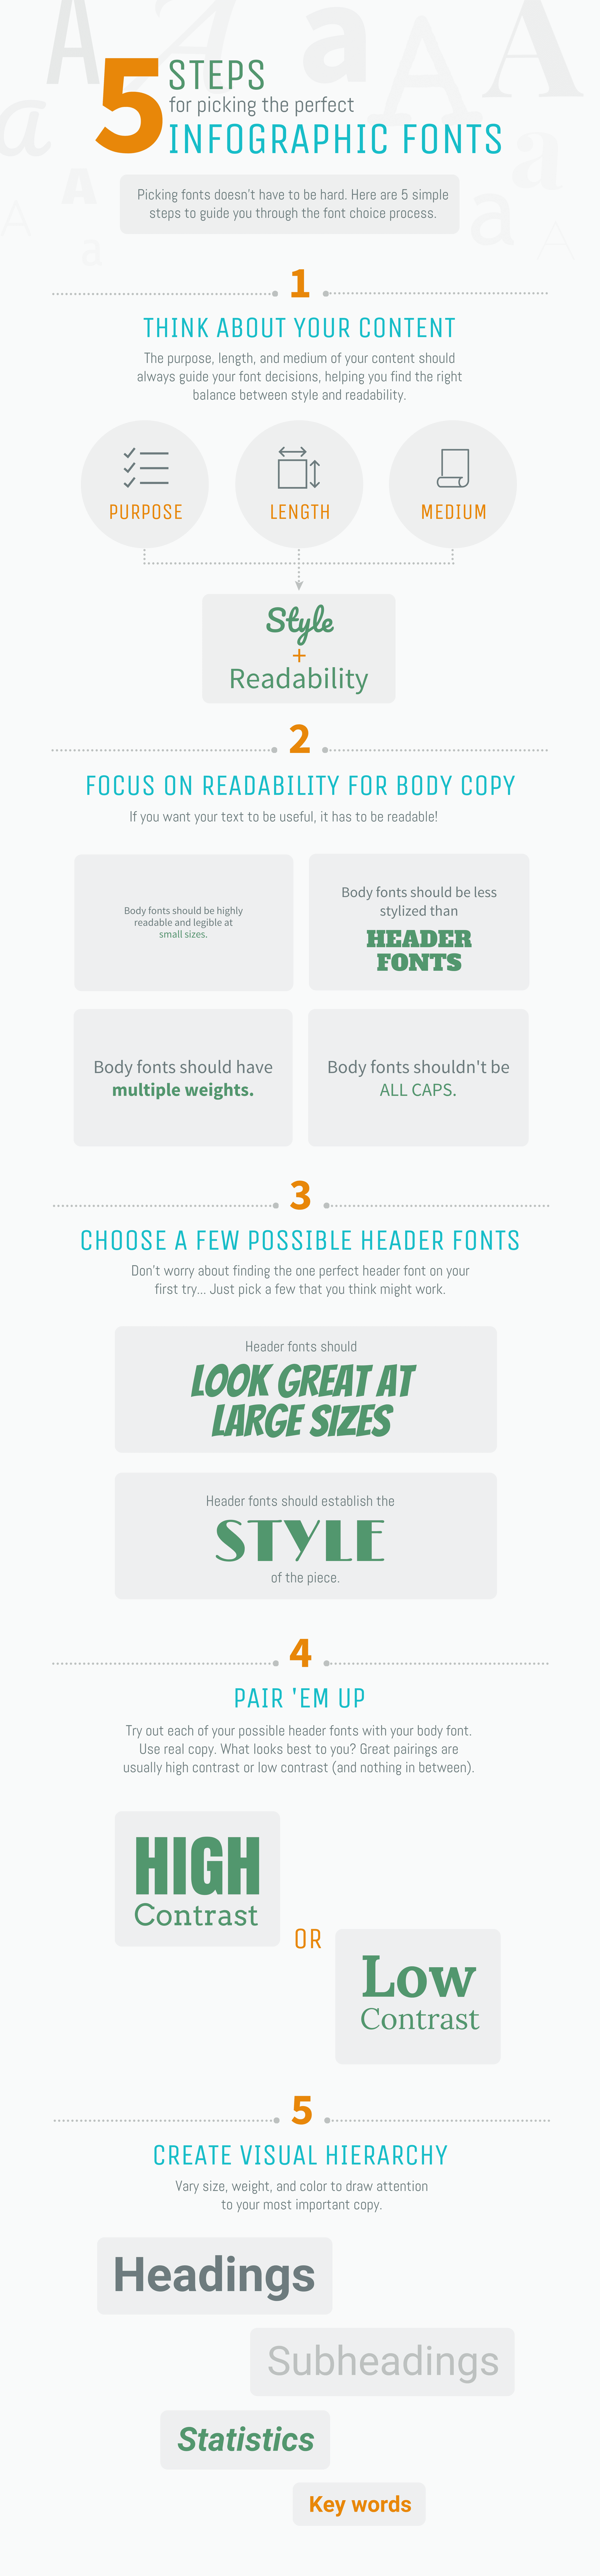 Font Infographic Template